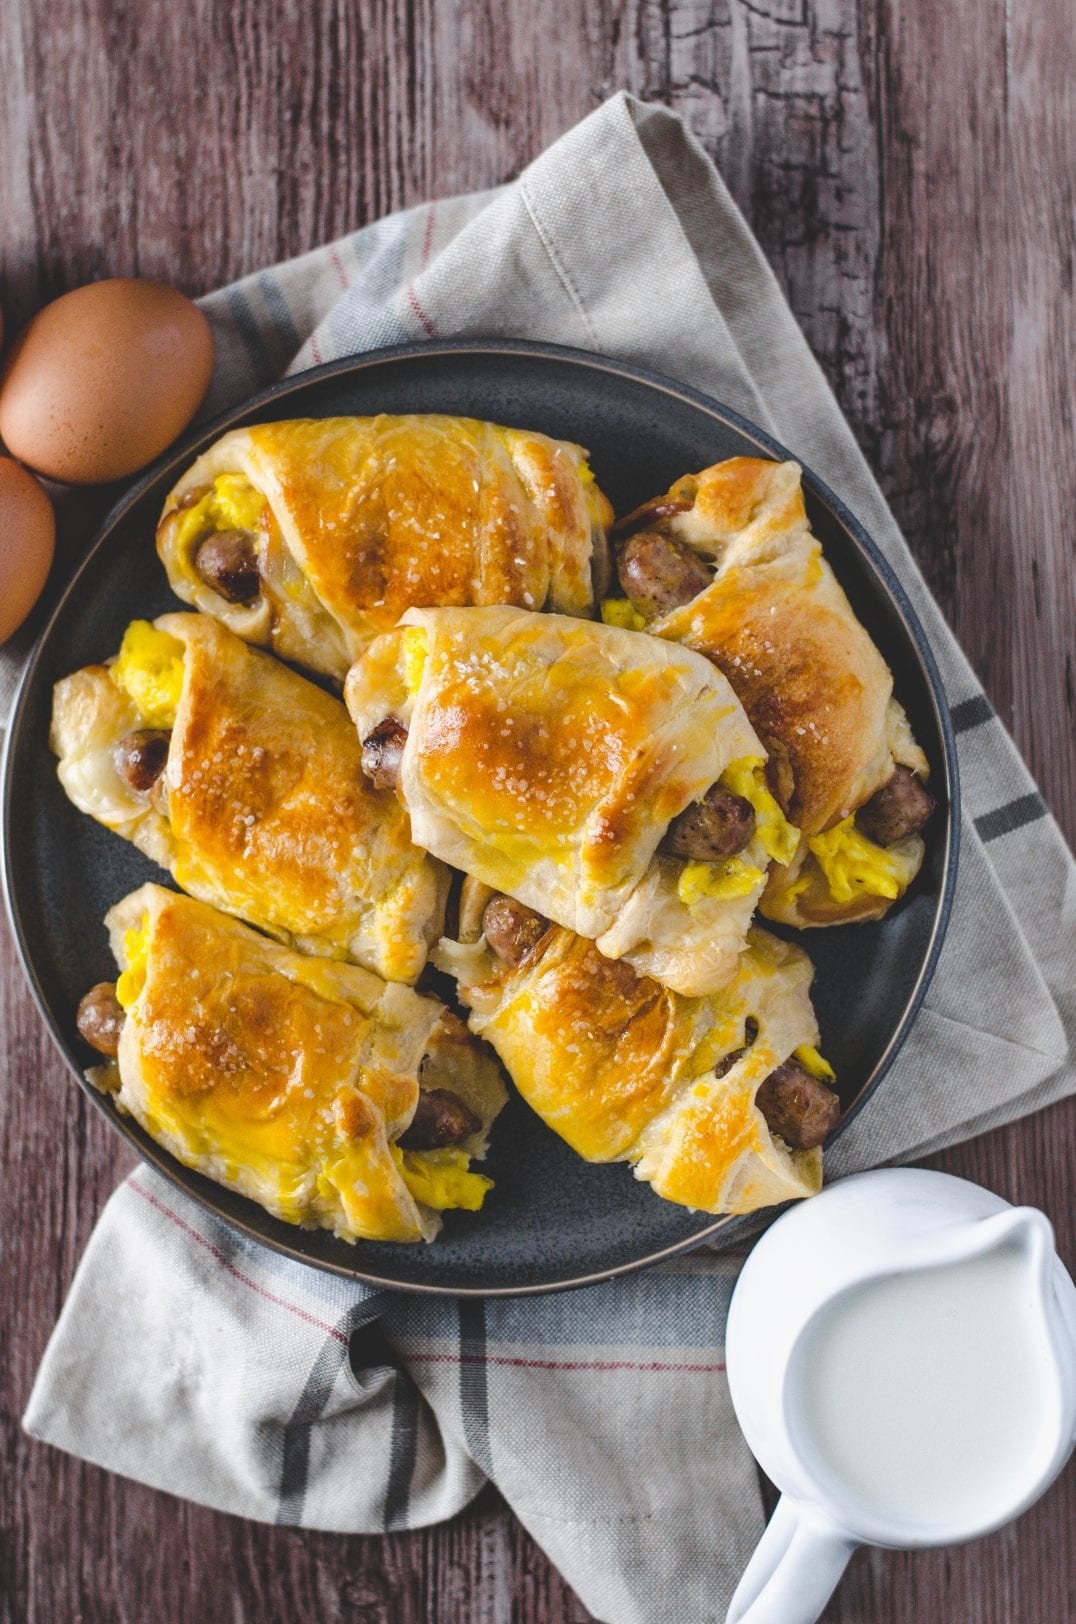 Sausage, Egg, Cheese Crescent Rolls